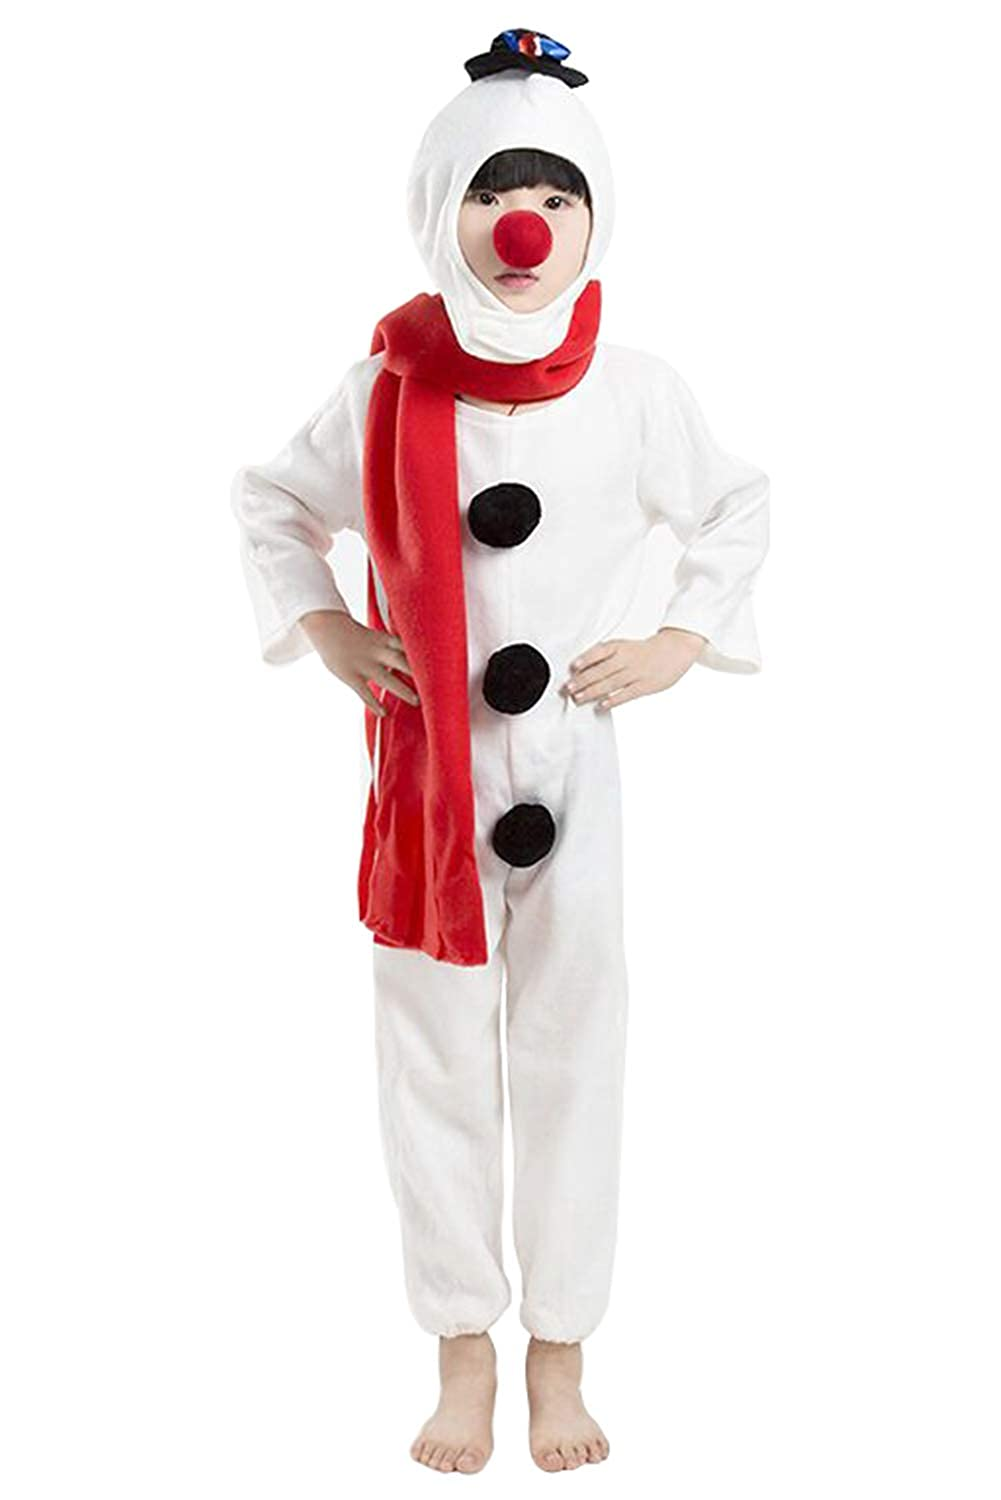 bacbdd775 Amazon.com  SUPERCOS Kids Plush Snowman Costume Christmas Snowman ...